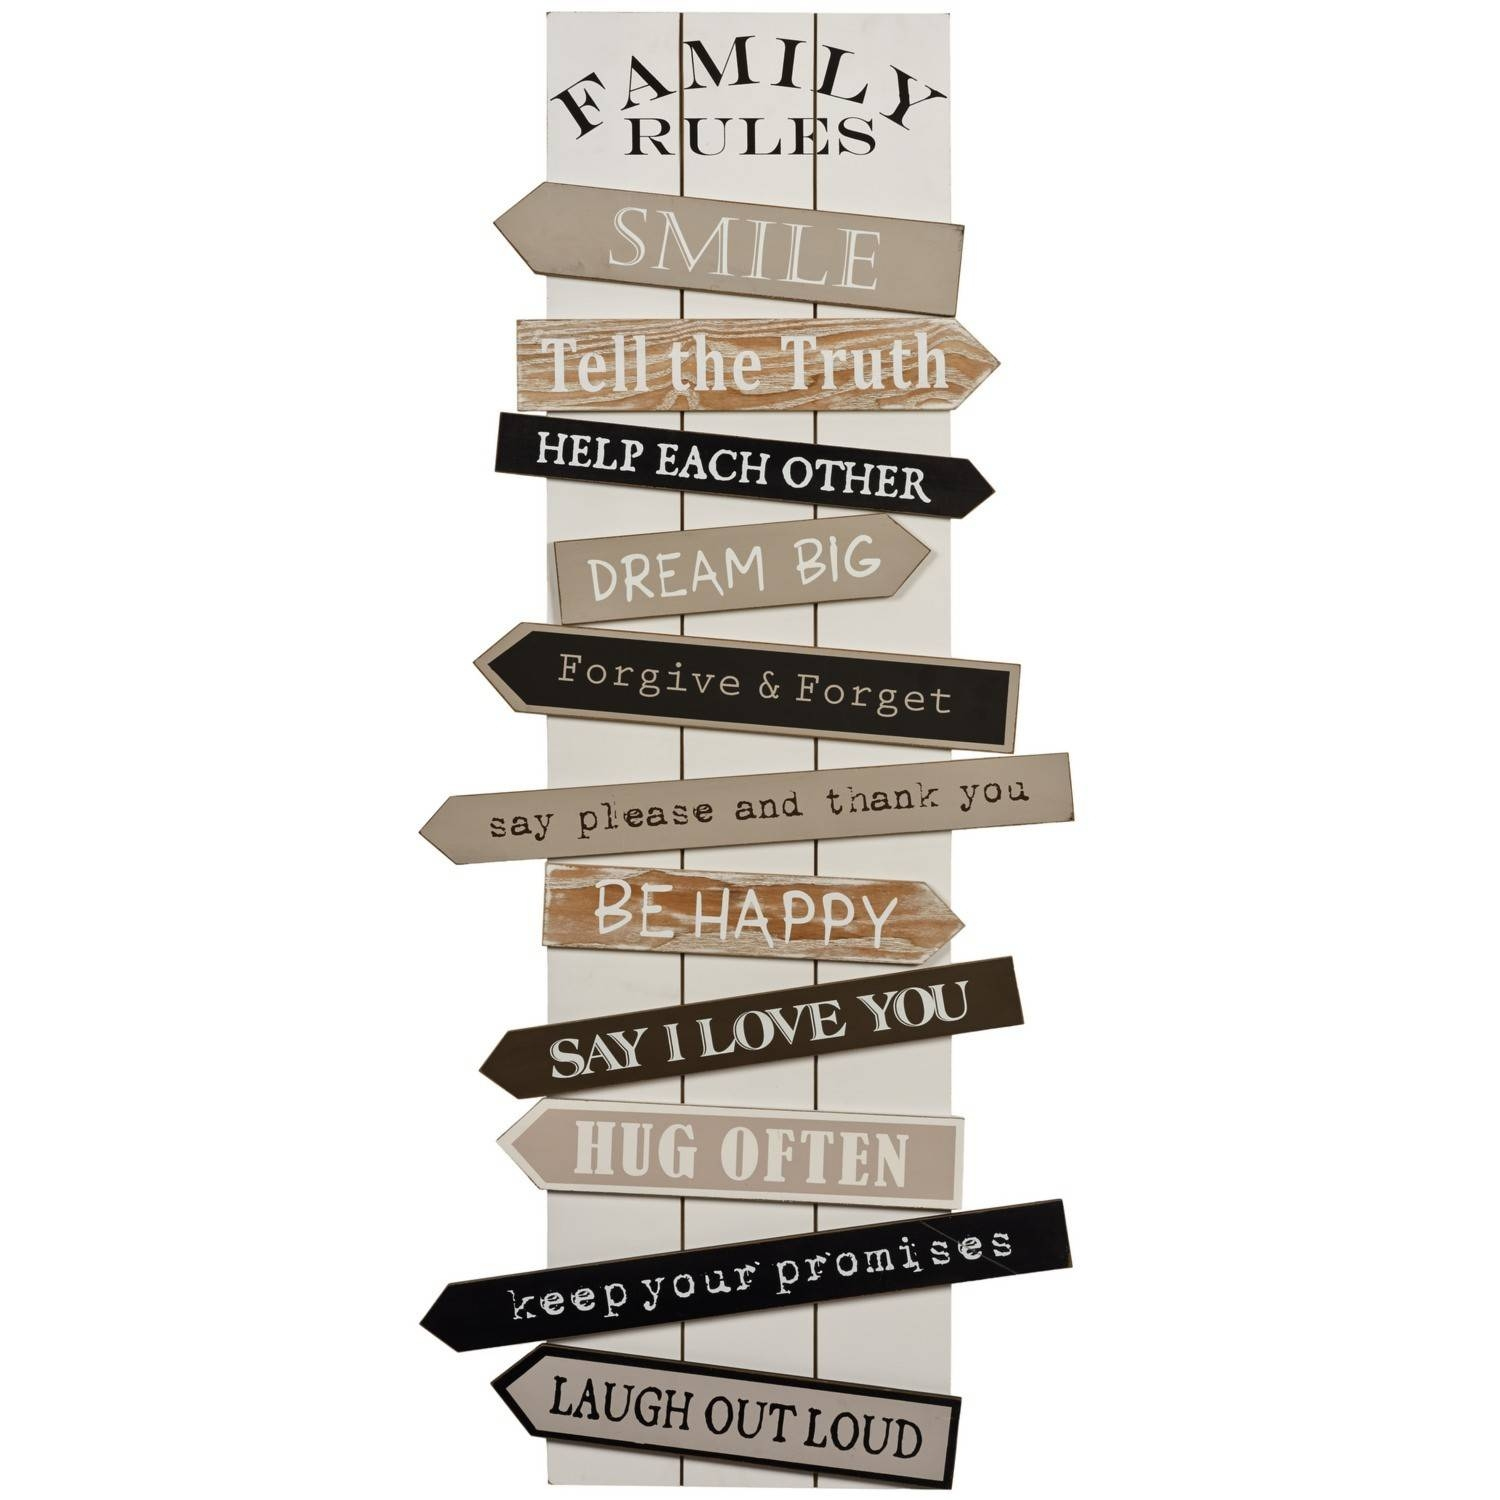 Wall Art Designs: Family Rules Wall Art Vintage Wall Art Wooden Within Most Recently Released Wooden Words Wall Art (Gallery 10 of 30)